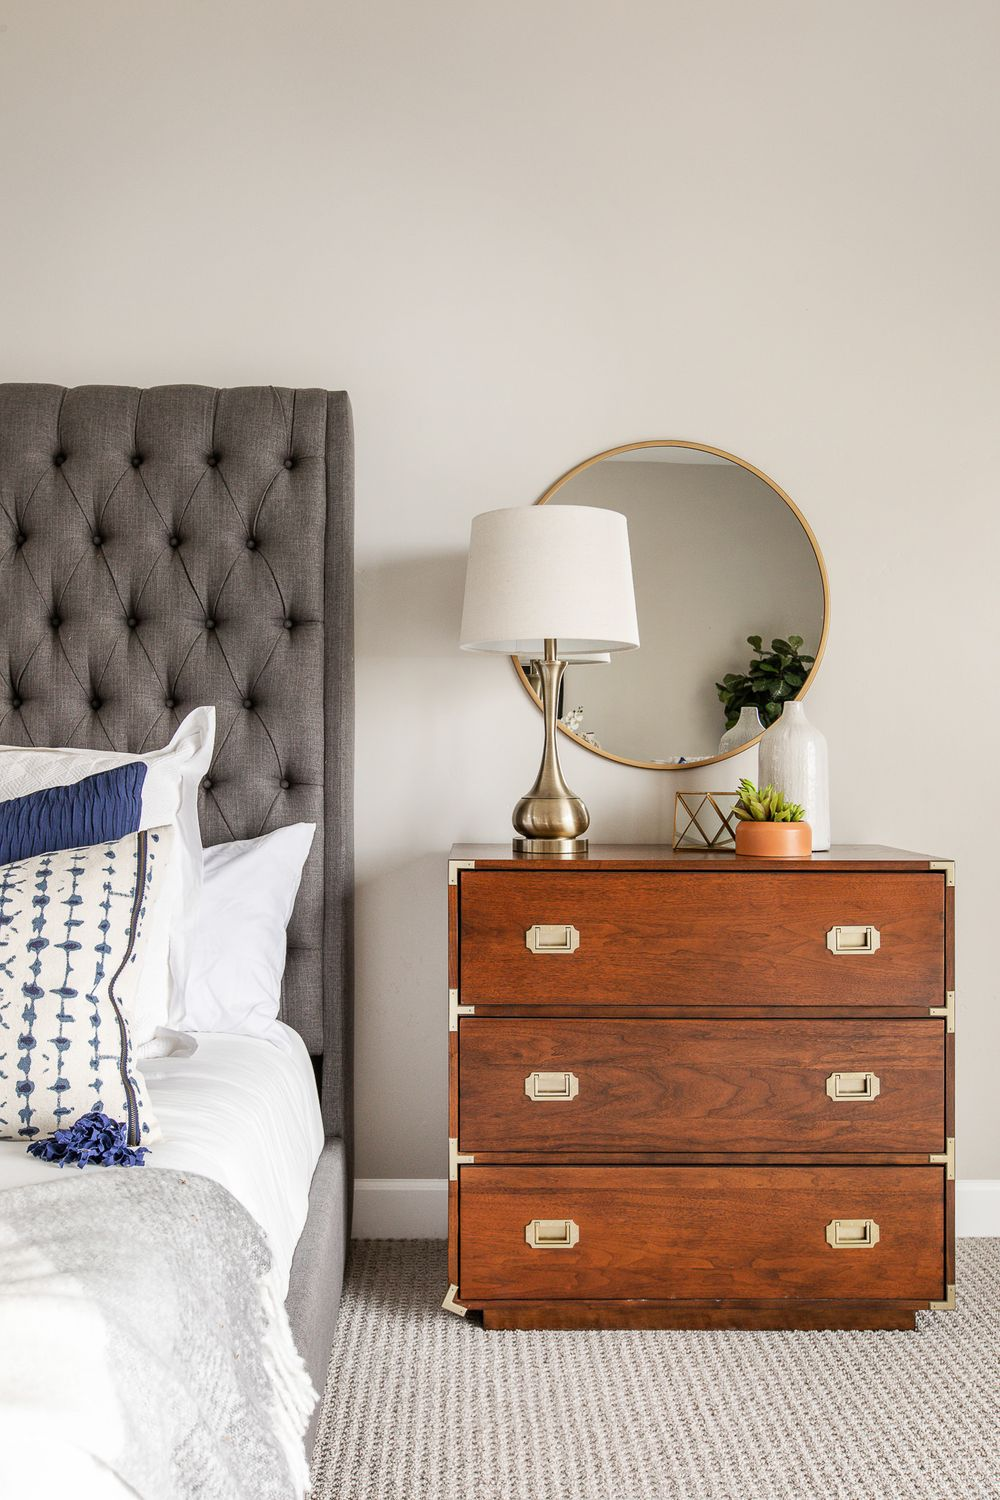 professional real estate photography - Bed with night stand, lamps and decor on the night stand with a mirror.